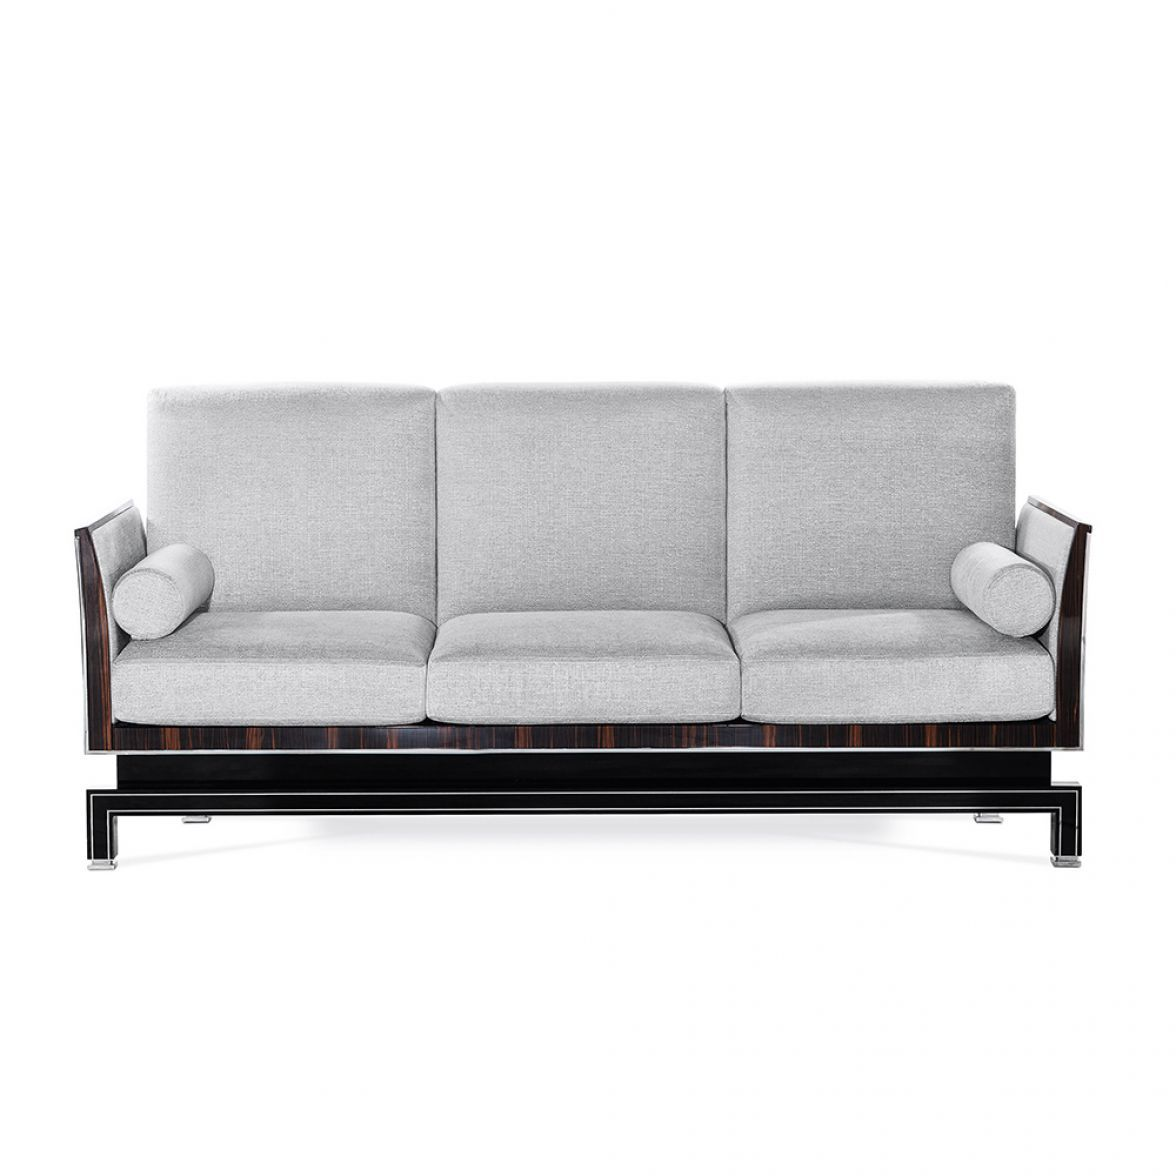 Next Deco Sofa  фото цена